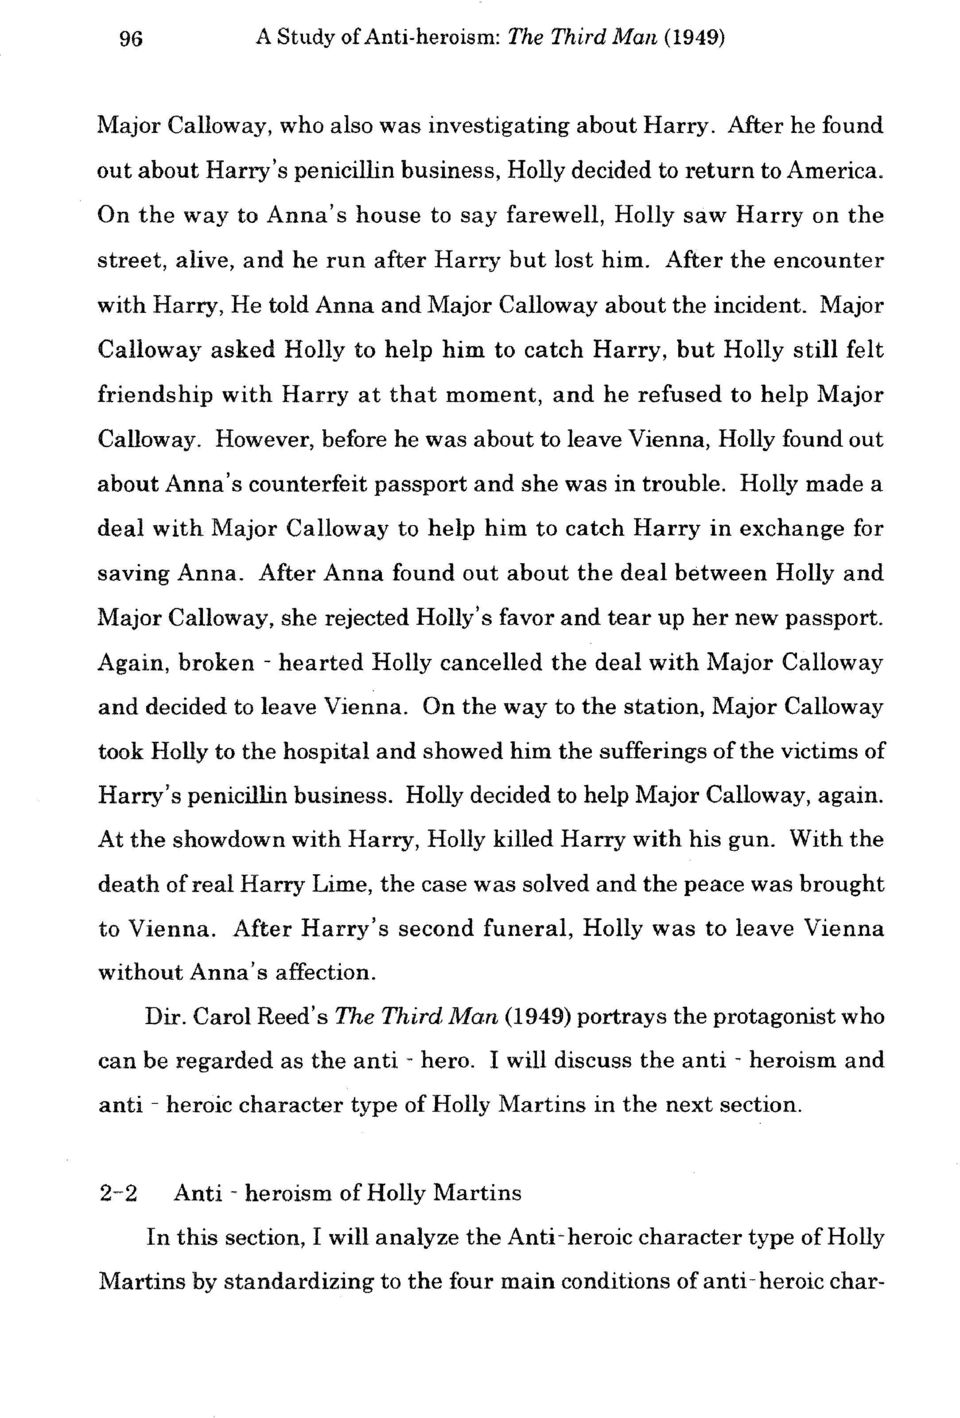 After the encounter with Harry, He told Anna and Major Calloway about the incident.